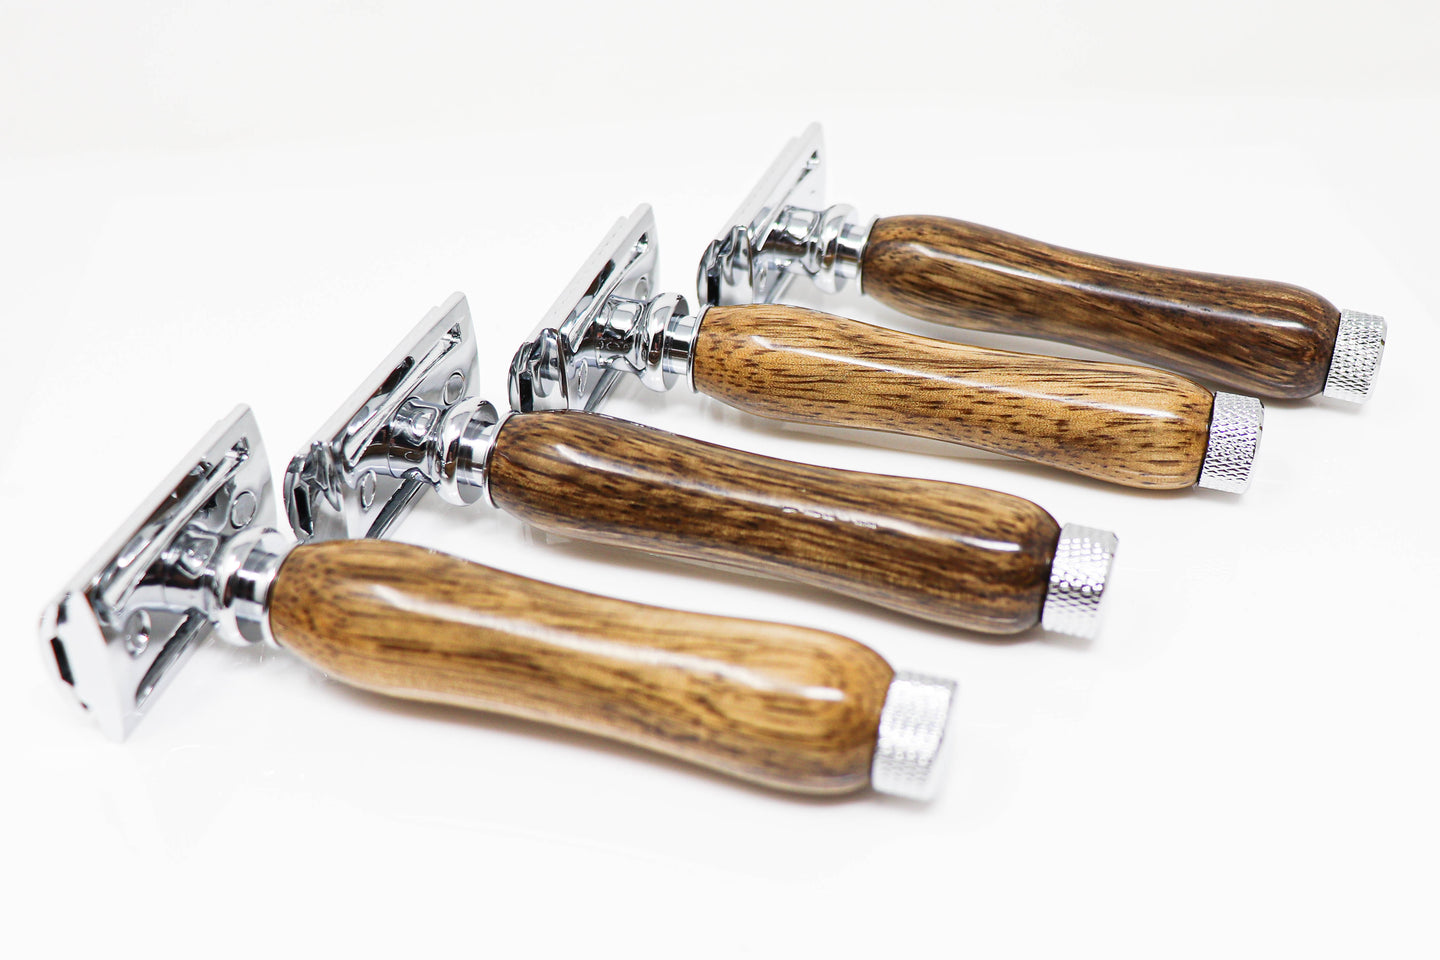 hand crafted razor set made from wood